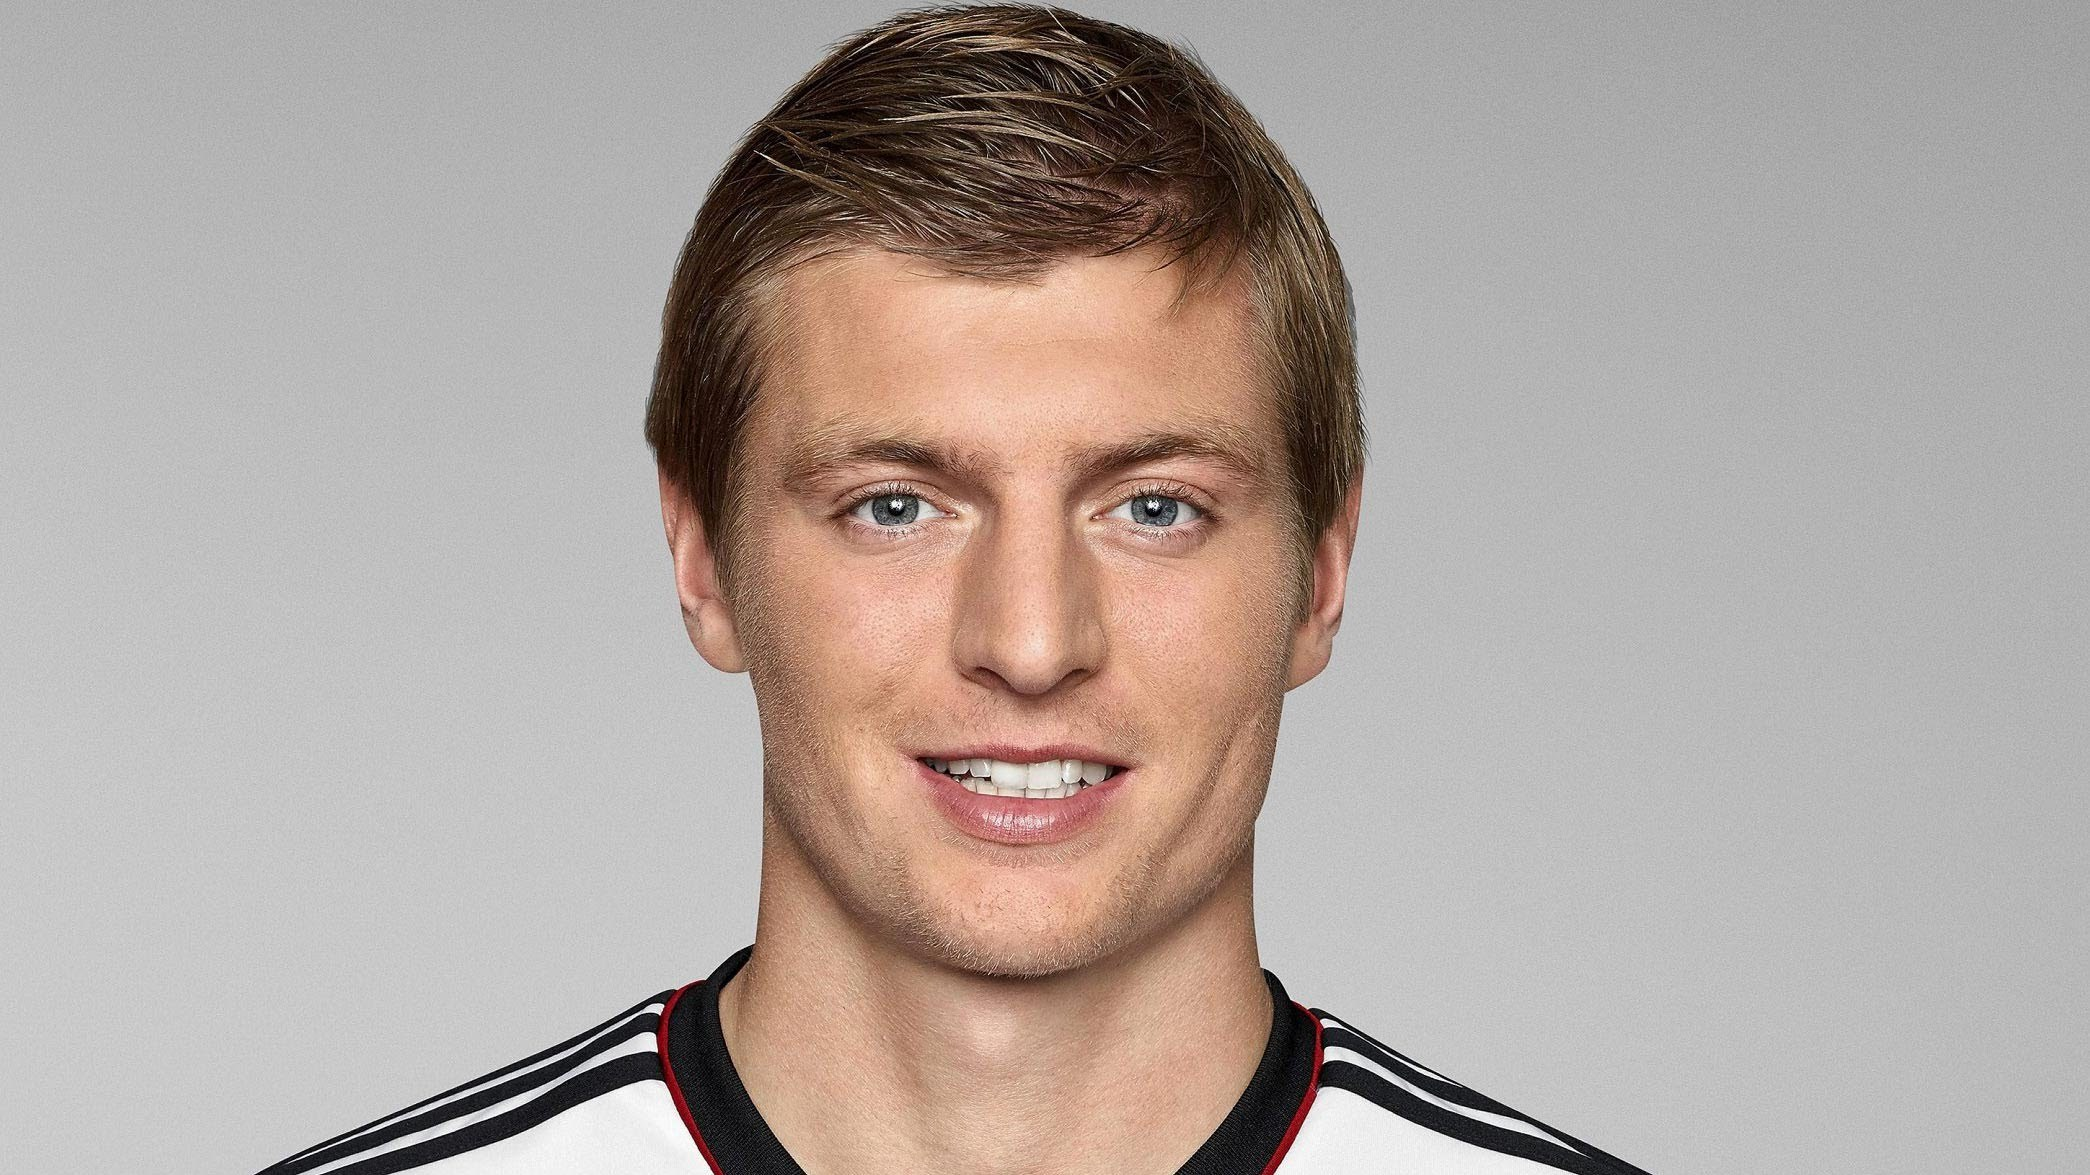 Toni Kroos Wallpapers HQ